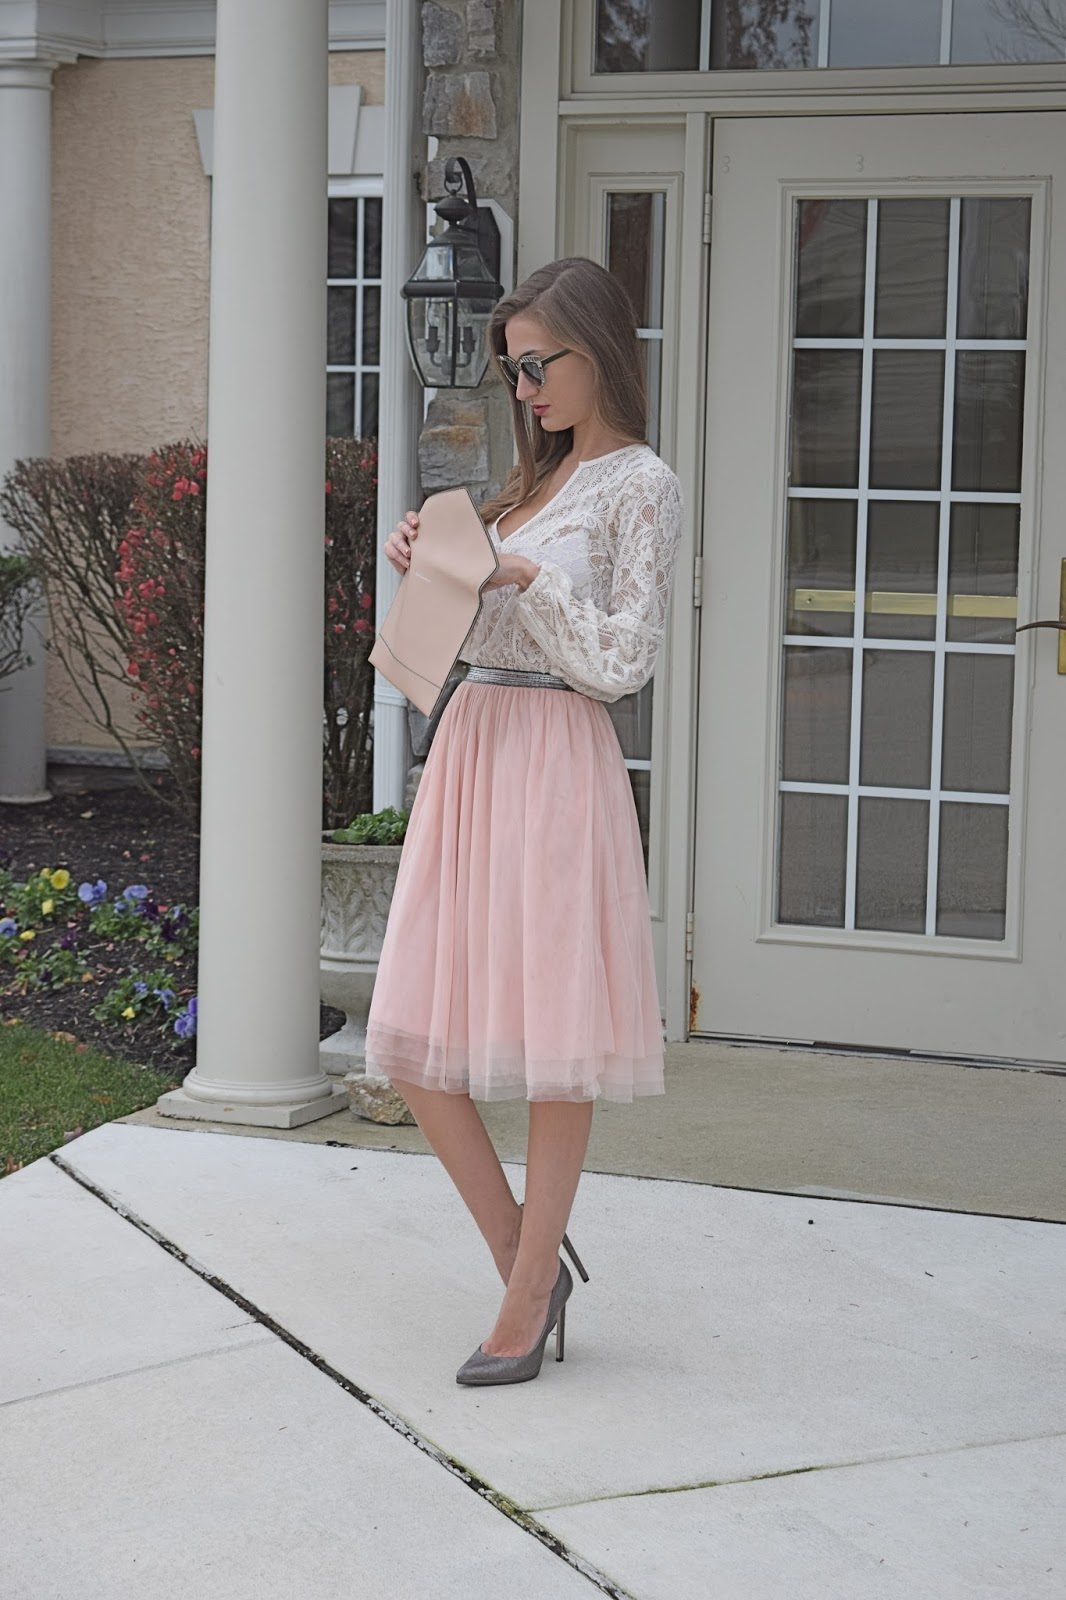 Wearing xhilaration blush tulle skirt, lace peasant top, Rebecca Minkoff Blush Leo Clutch